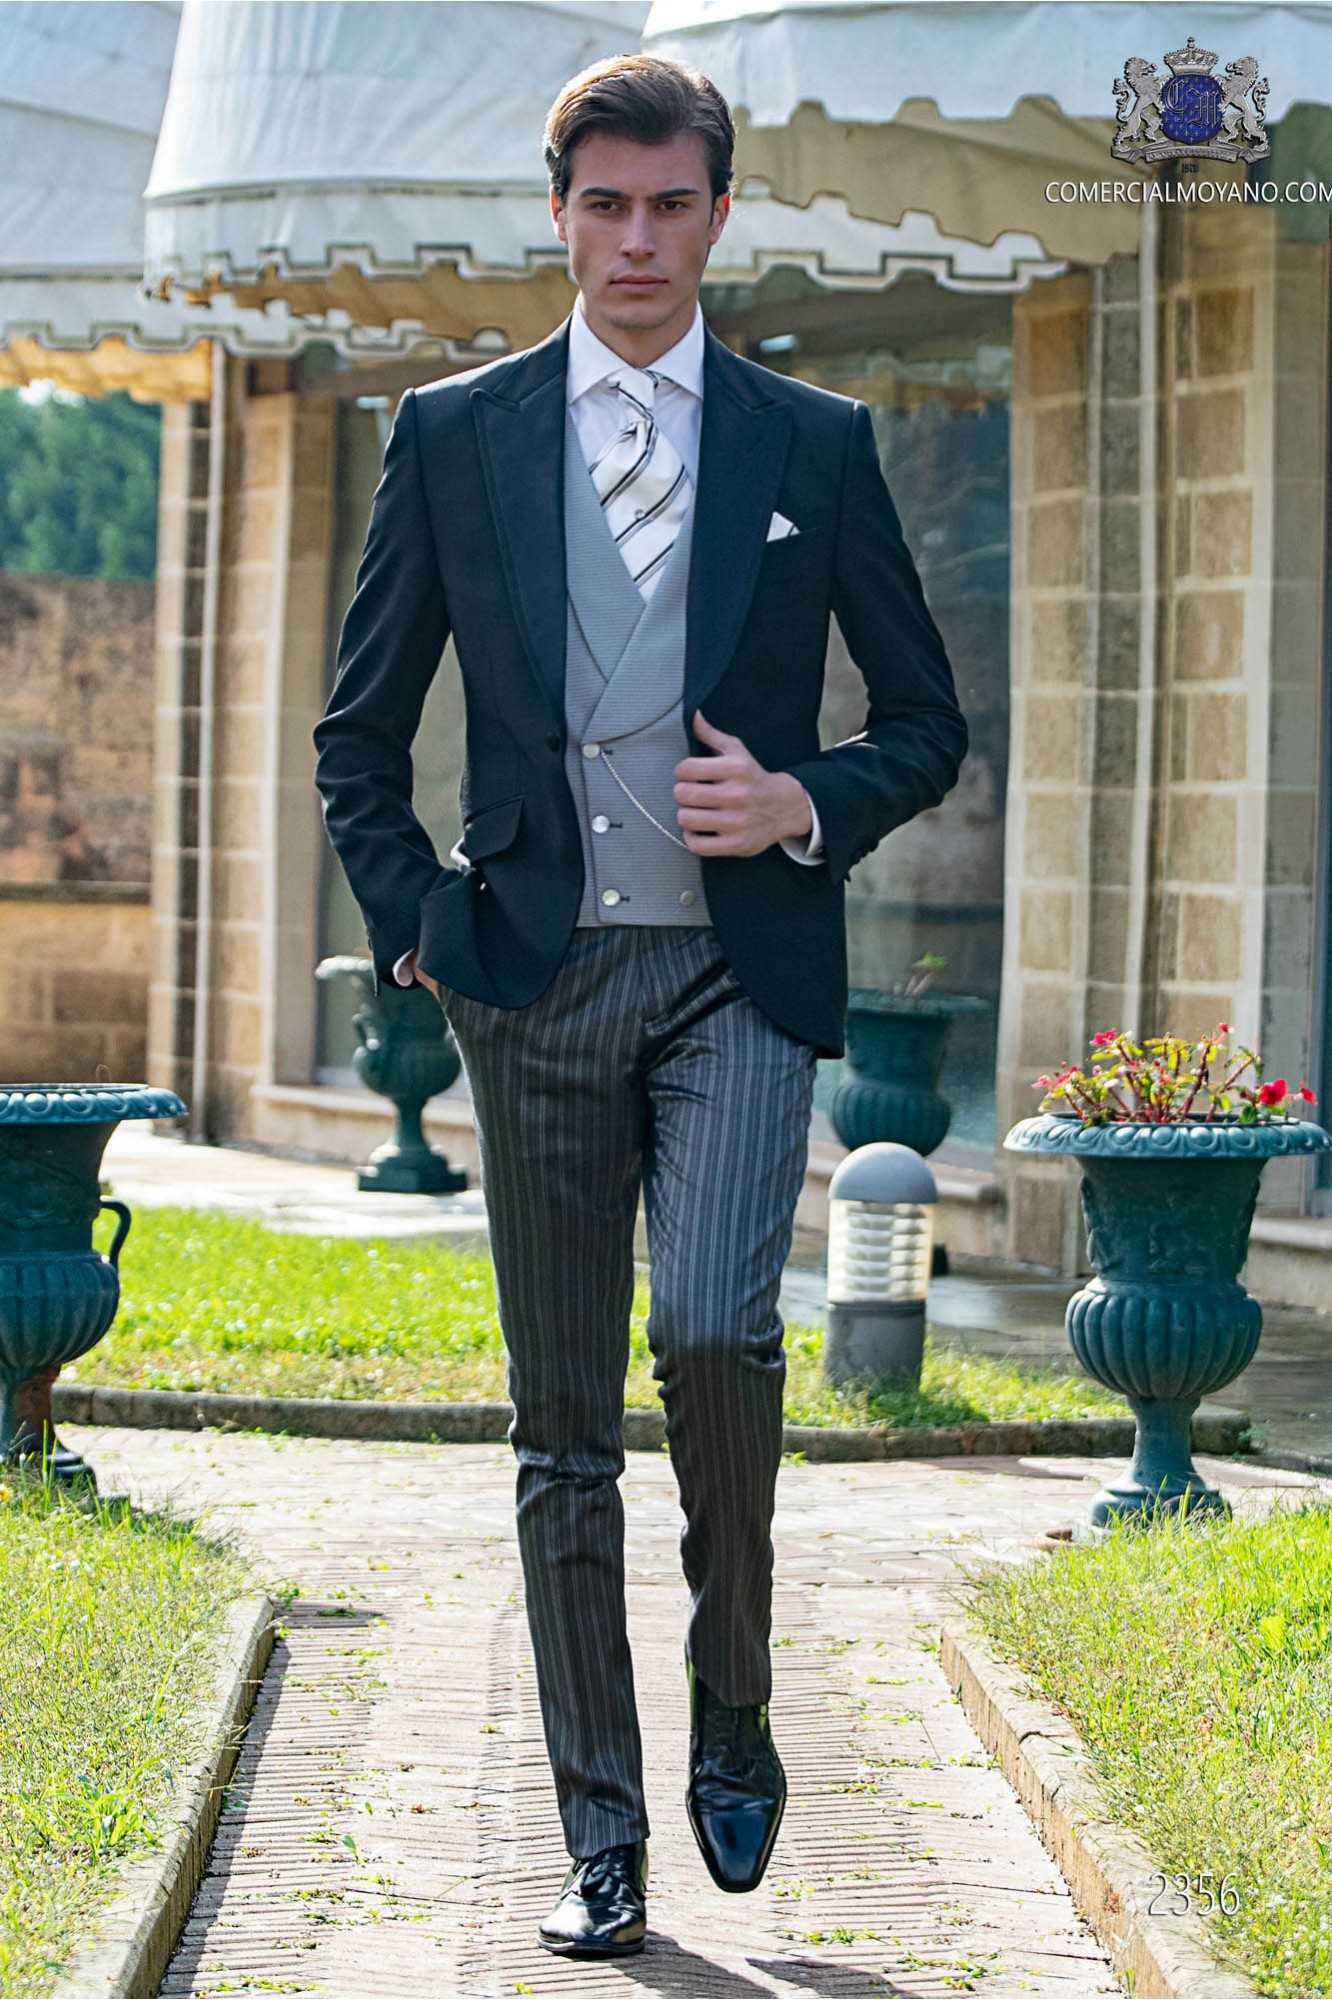 Italian black men wedding suit coordinated with pinstripe trousers